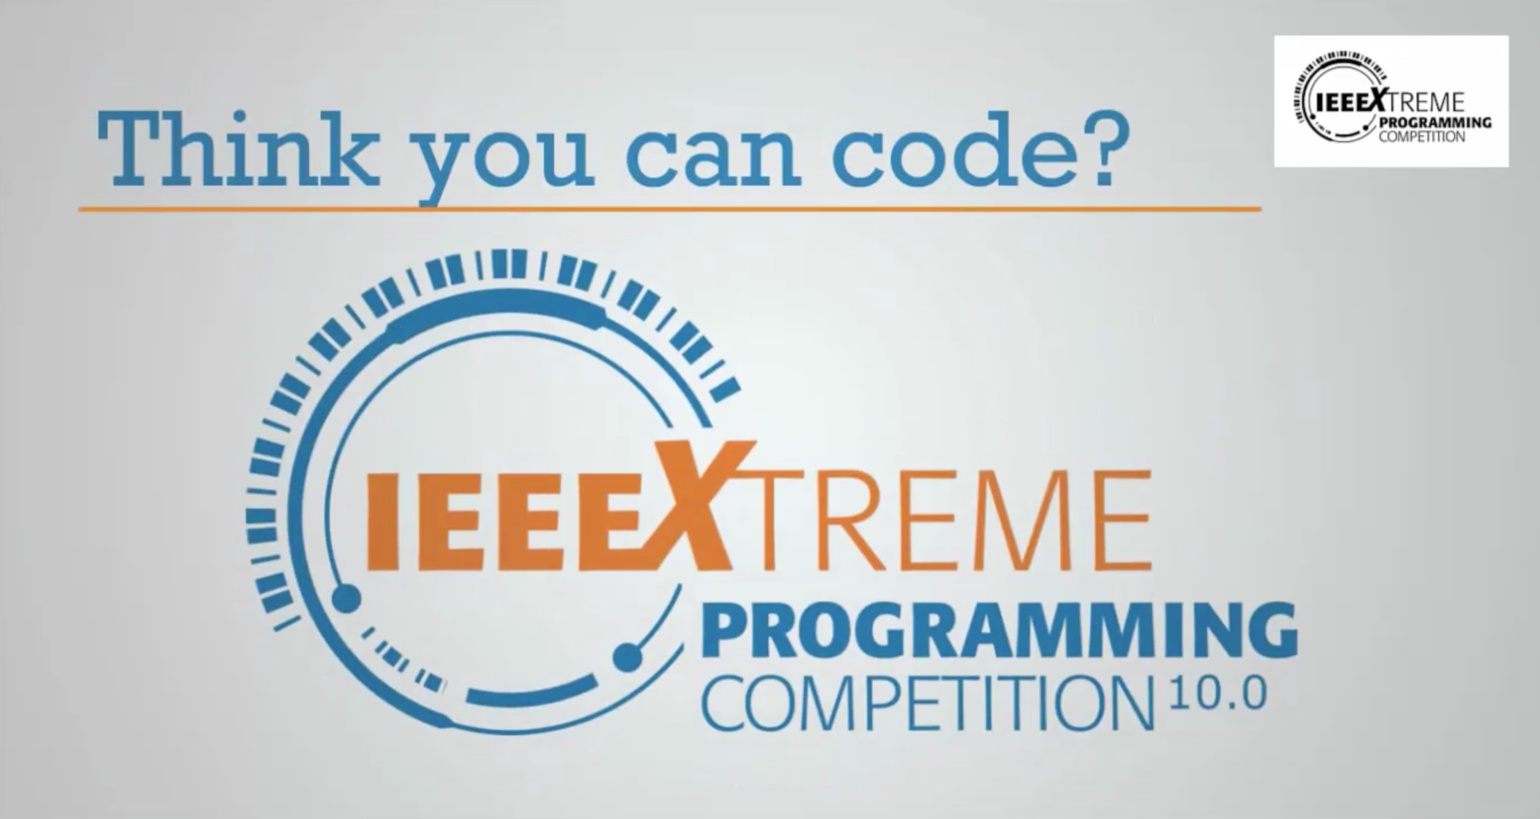 IEEEXtreme 24-Hour Programming Competition - Sign up now for IEEEXtreme 10.0